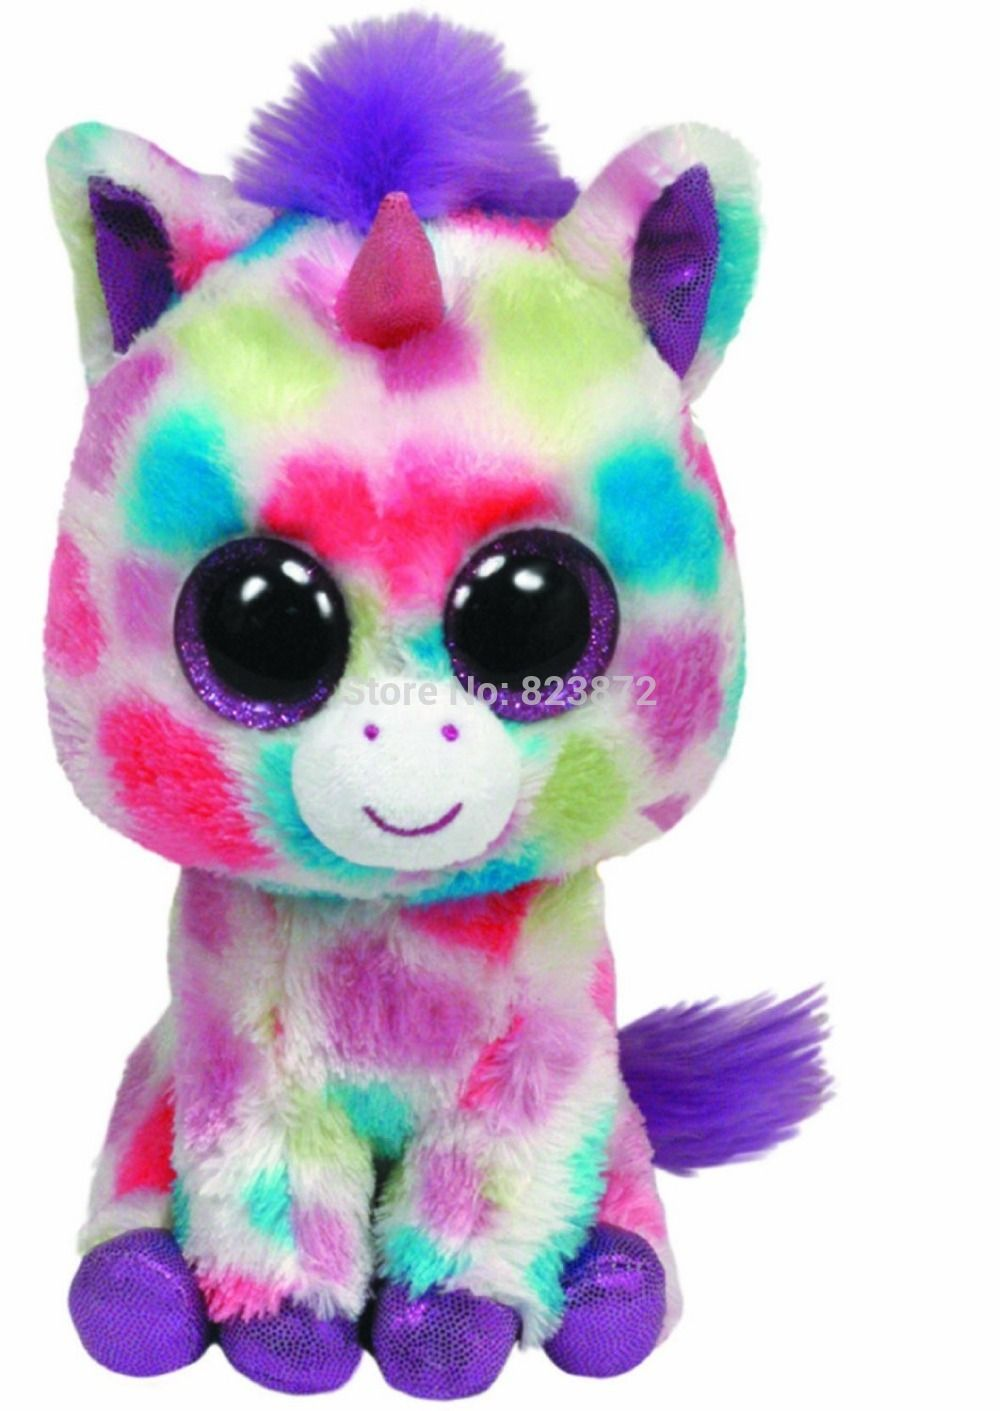 Original TY Big Eyes Beanie Boos Wishful Plush Unicorn Toys cm